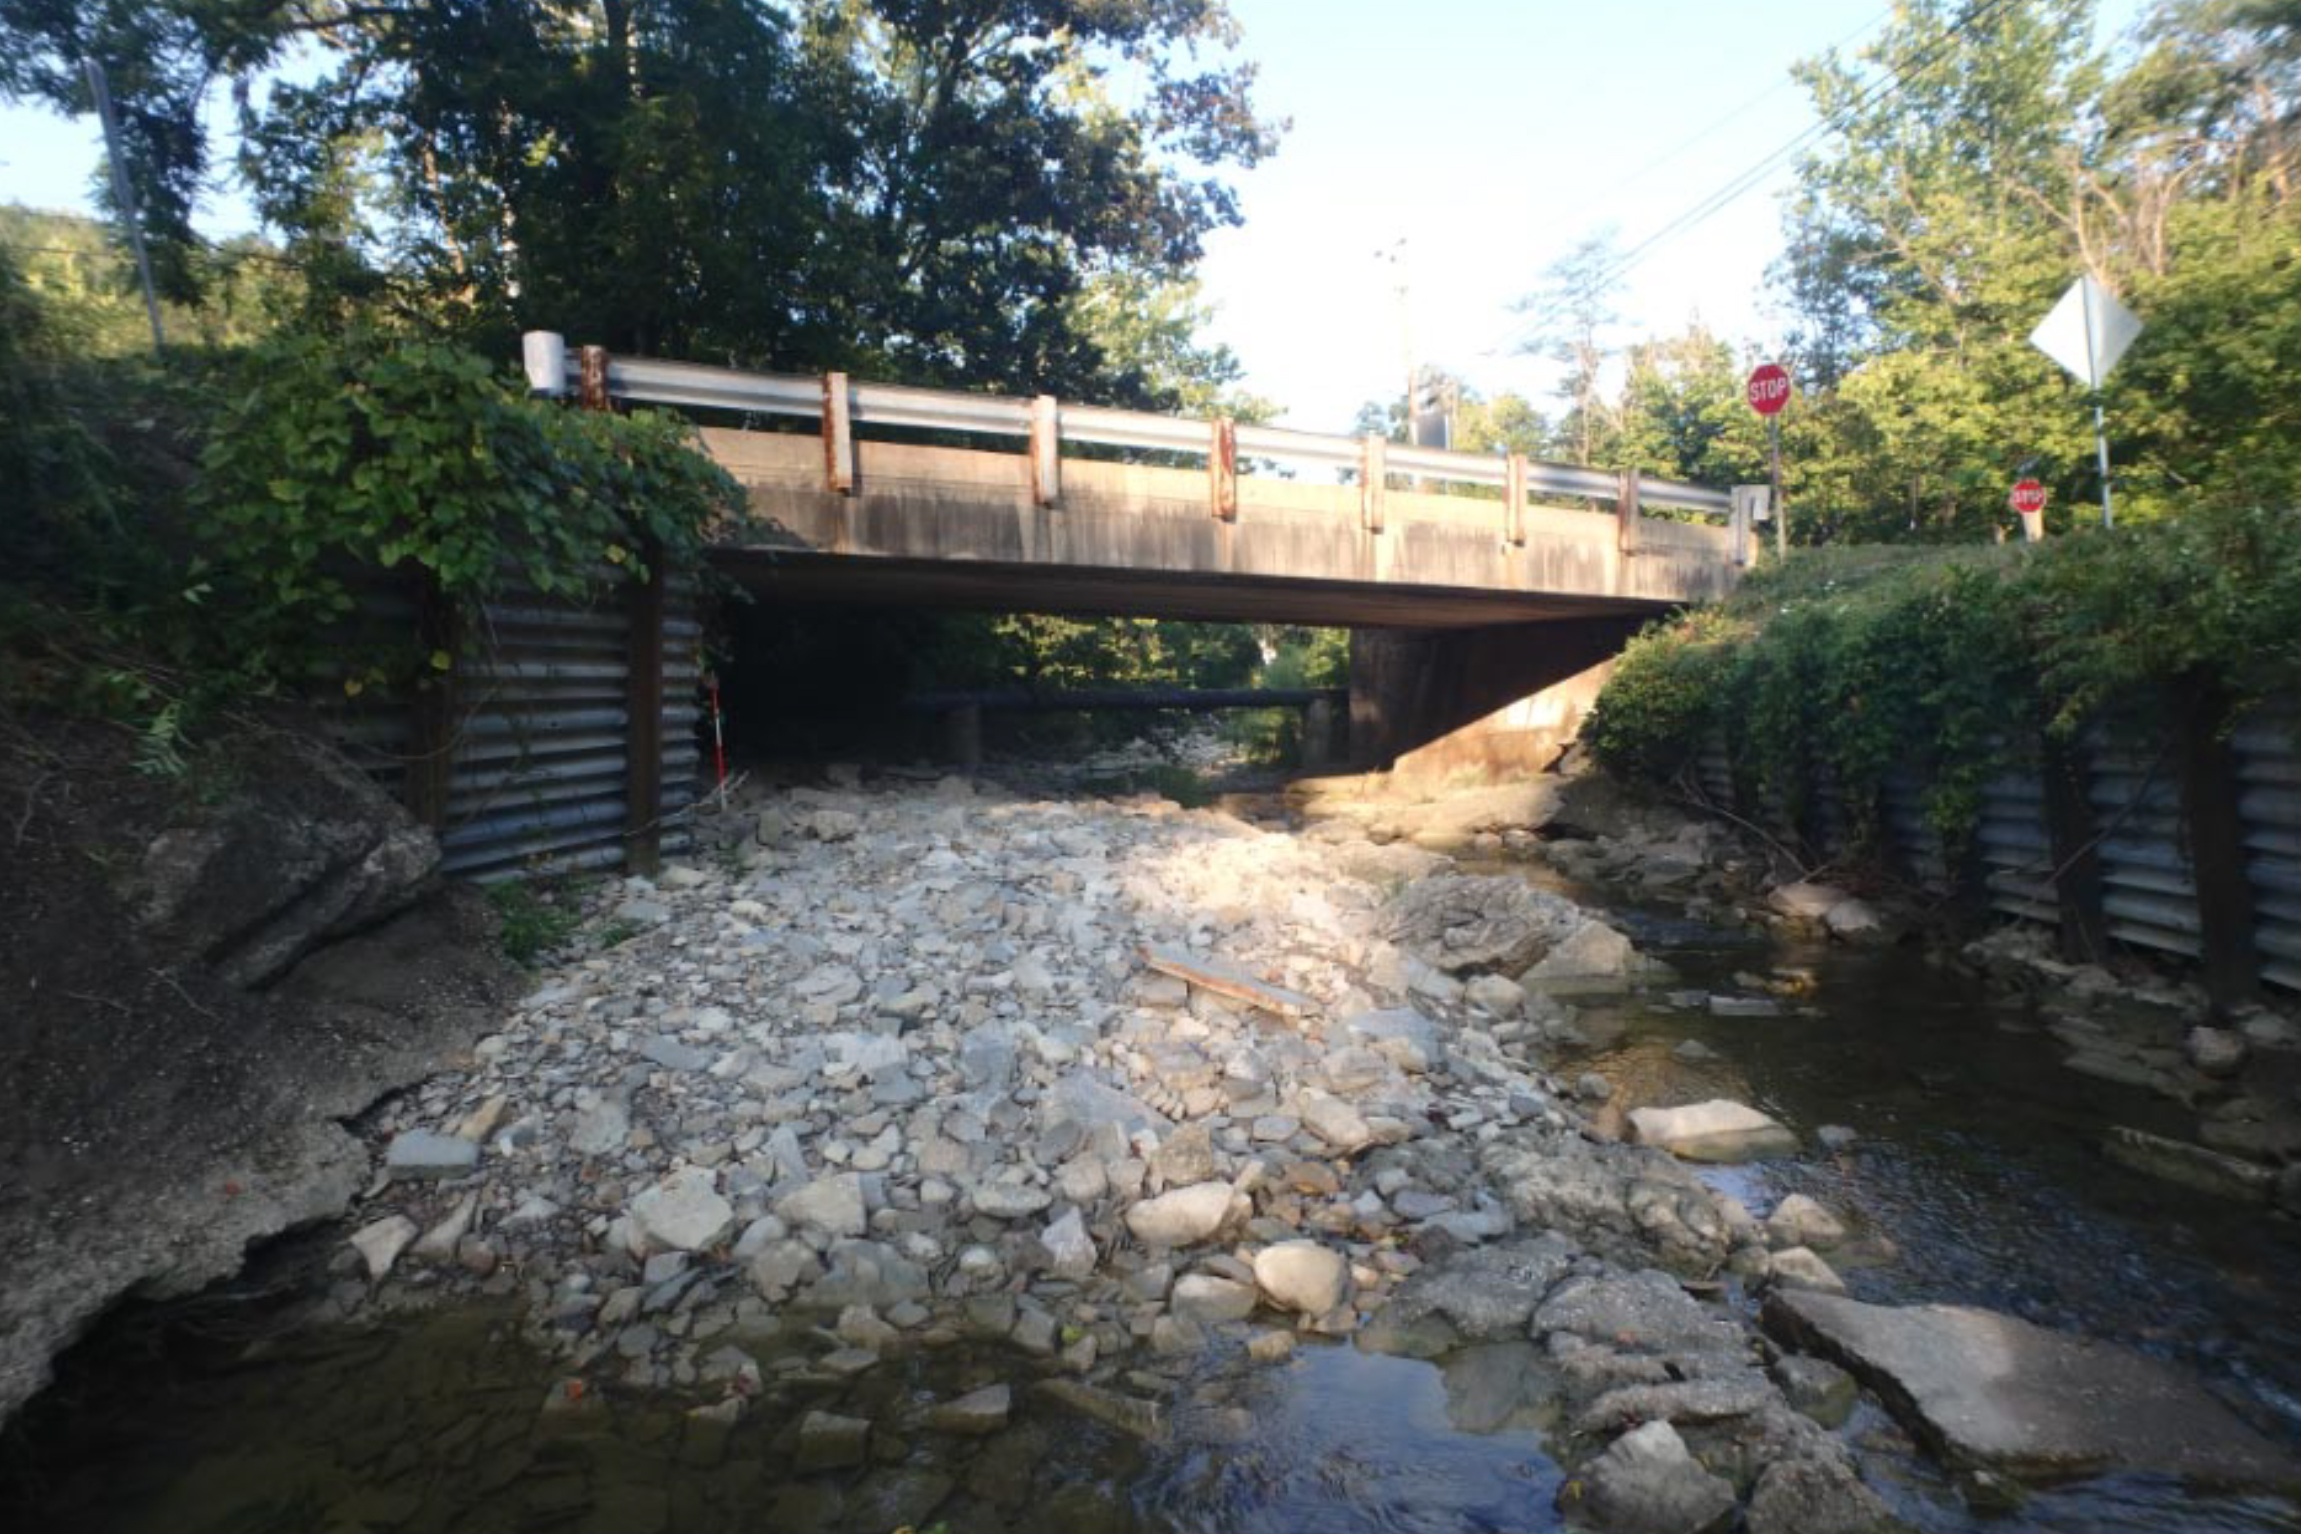 Replacement Project on KY 2238 Bridge over 3-Mile Creek in Campbell County Scheduled to Begin